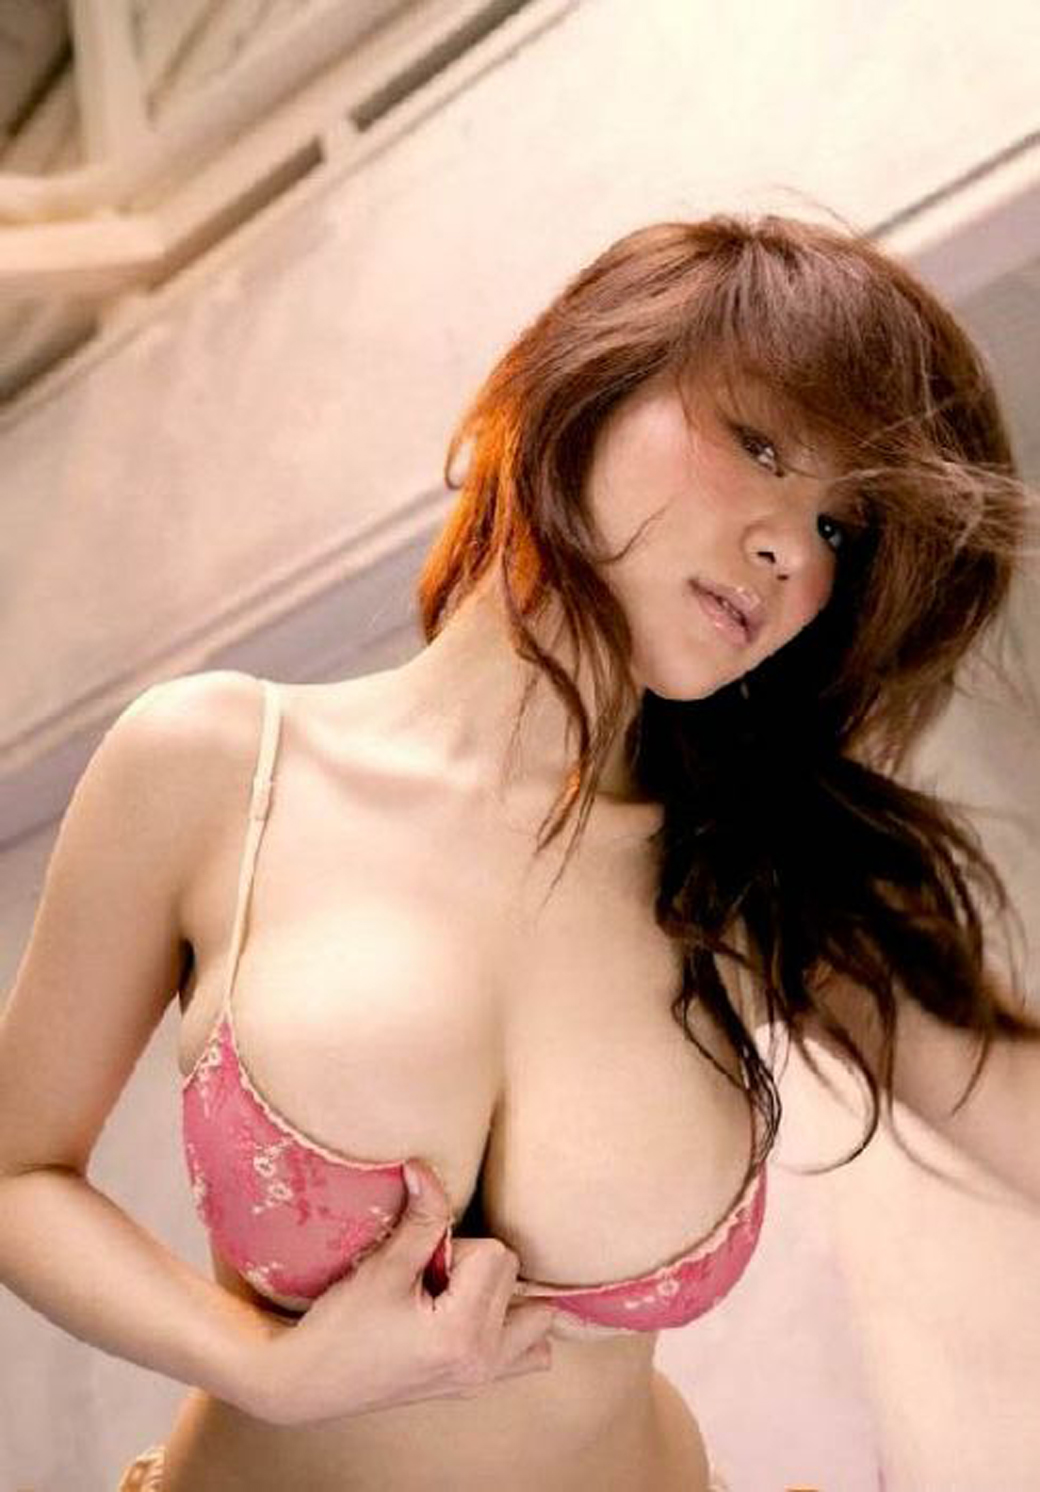 pina love dating online